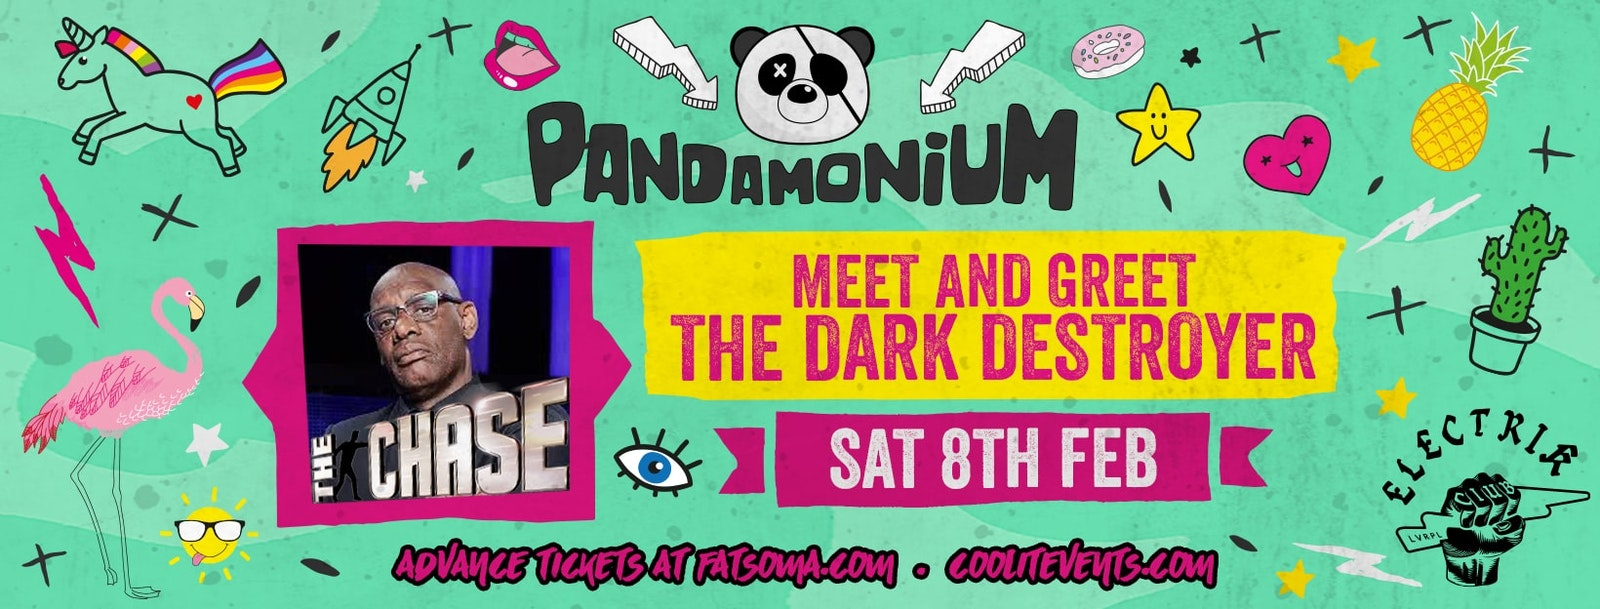 Pandamonium Saturdays – The Dark Destroyer Meet & Greet